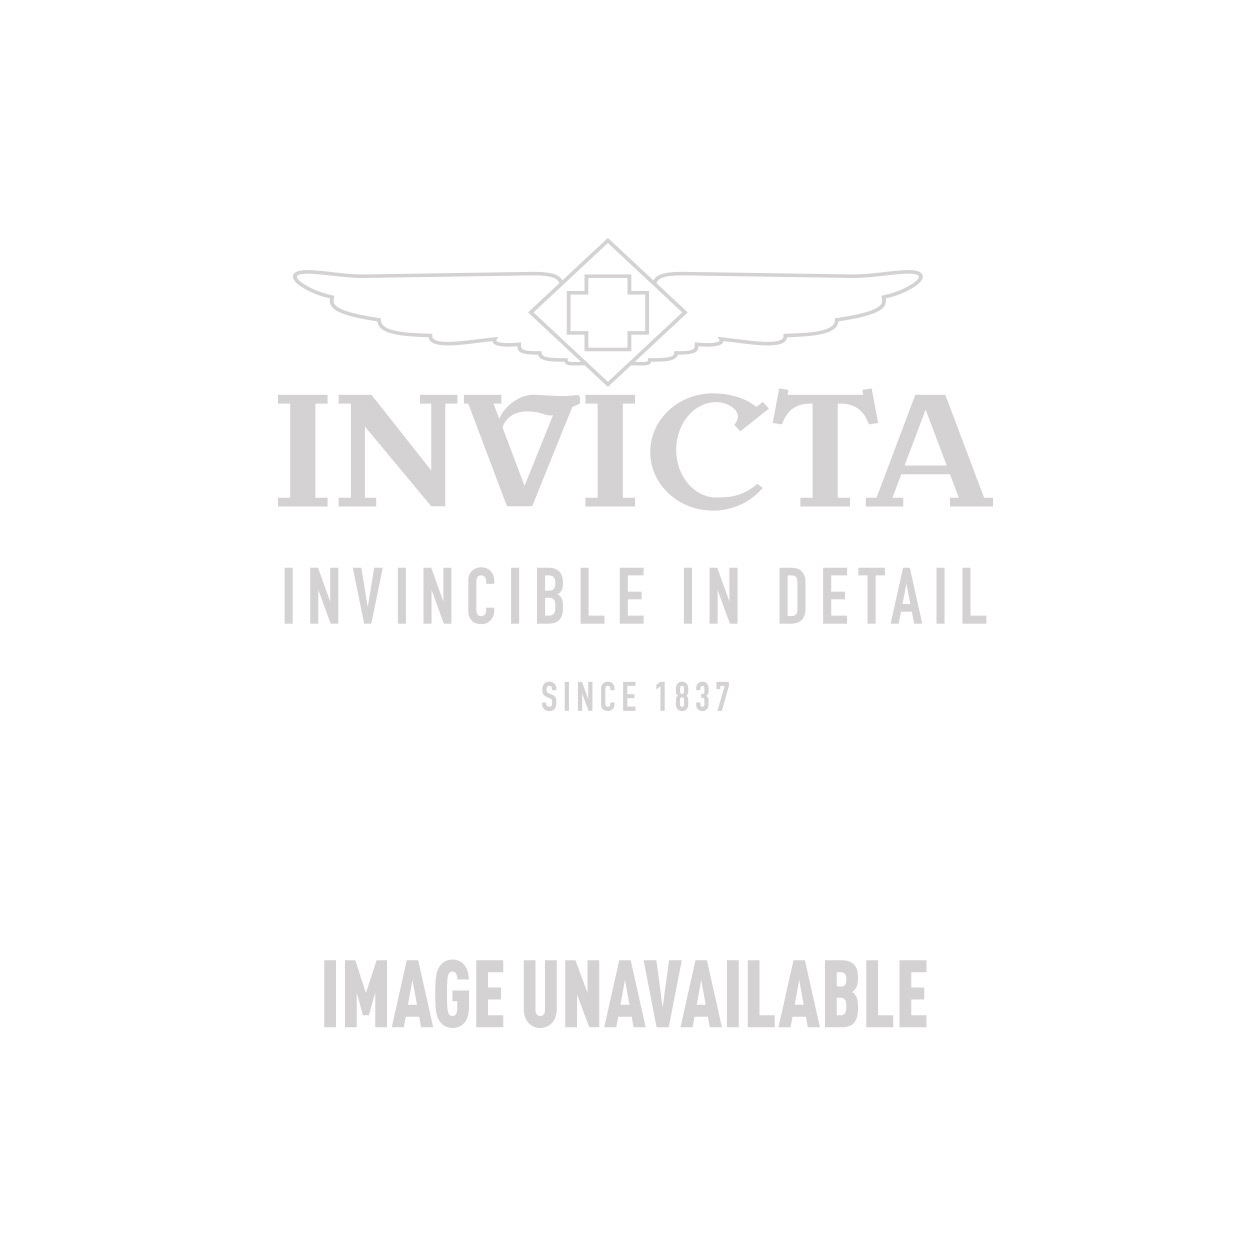 Invicta Excursion Swiss Made Quartz Watch - Stainless Steel case Stainless Steel band - Model 13081